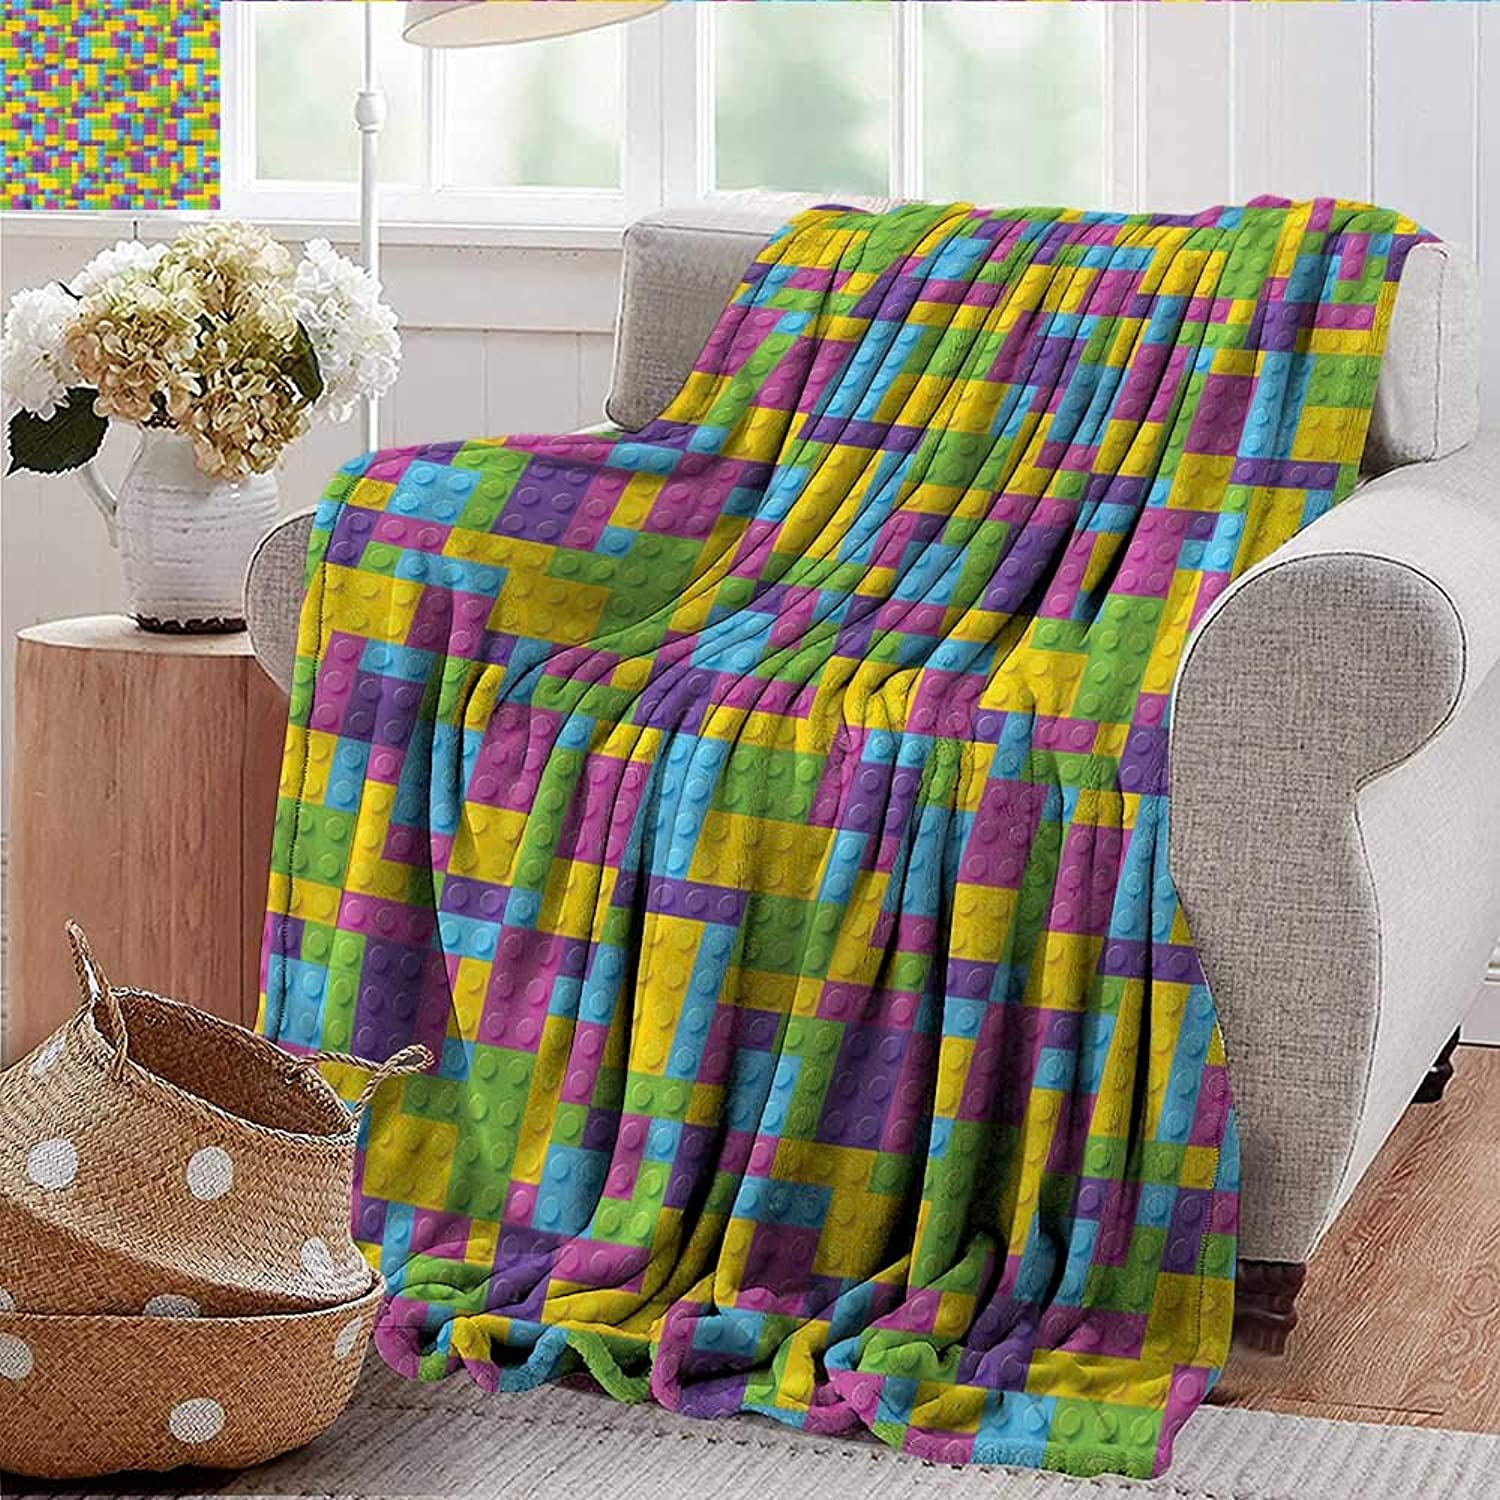 Xaviera Doherty Couch Blanket Kids,colorful Blocks Game Cube Warm & Hypoallergenic Washable Couch Bed Throws, Microfiber 50 x60